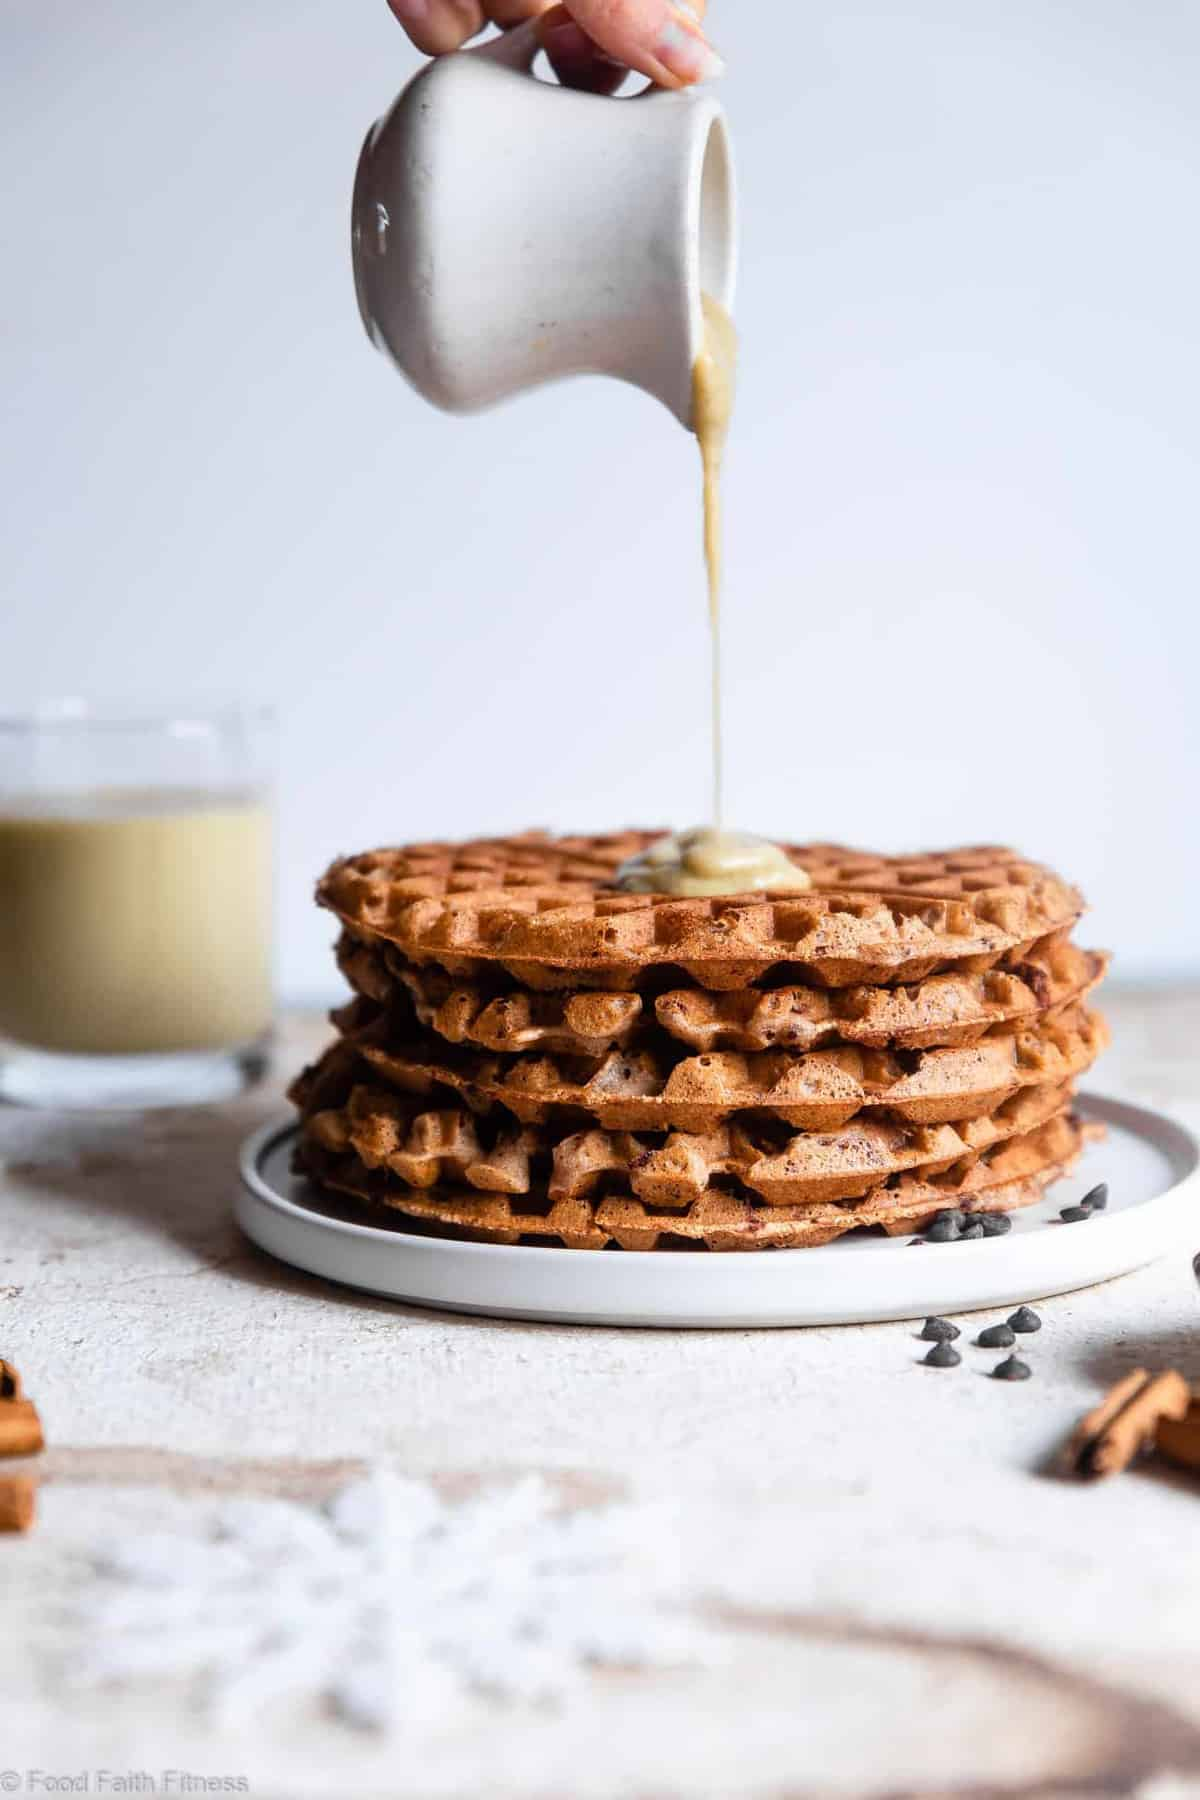 """Gluten Free Vegan Waffles with Eggnog """"Cream"""" Sauce -These FLUFFY vegan waffles are studded with chocolate chips and covered with a healthy eggnog """"cream"""" sauce! A delicious holiday breakfast that you can make ahead for easy mornings! 